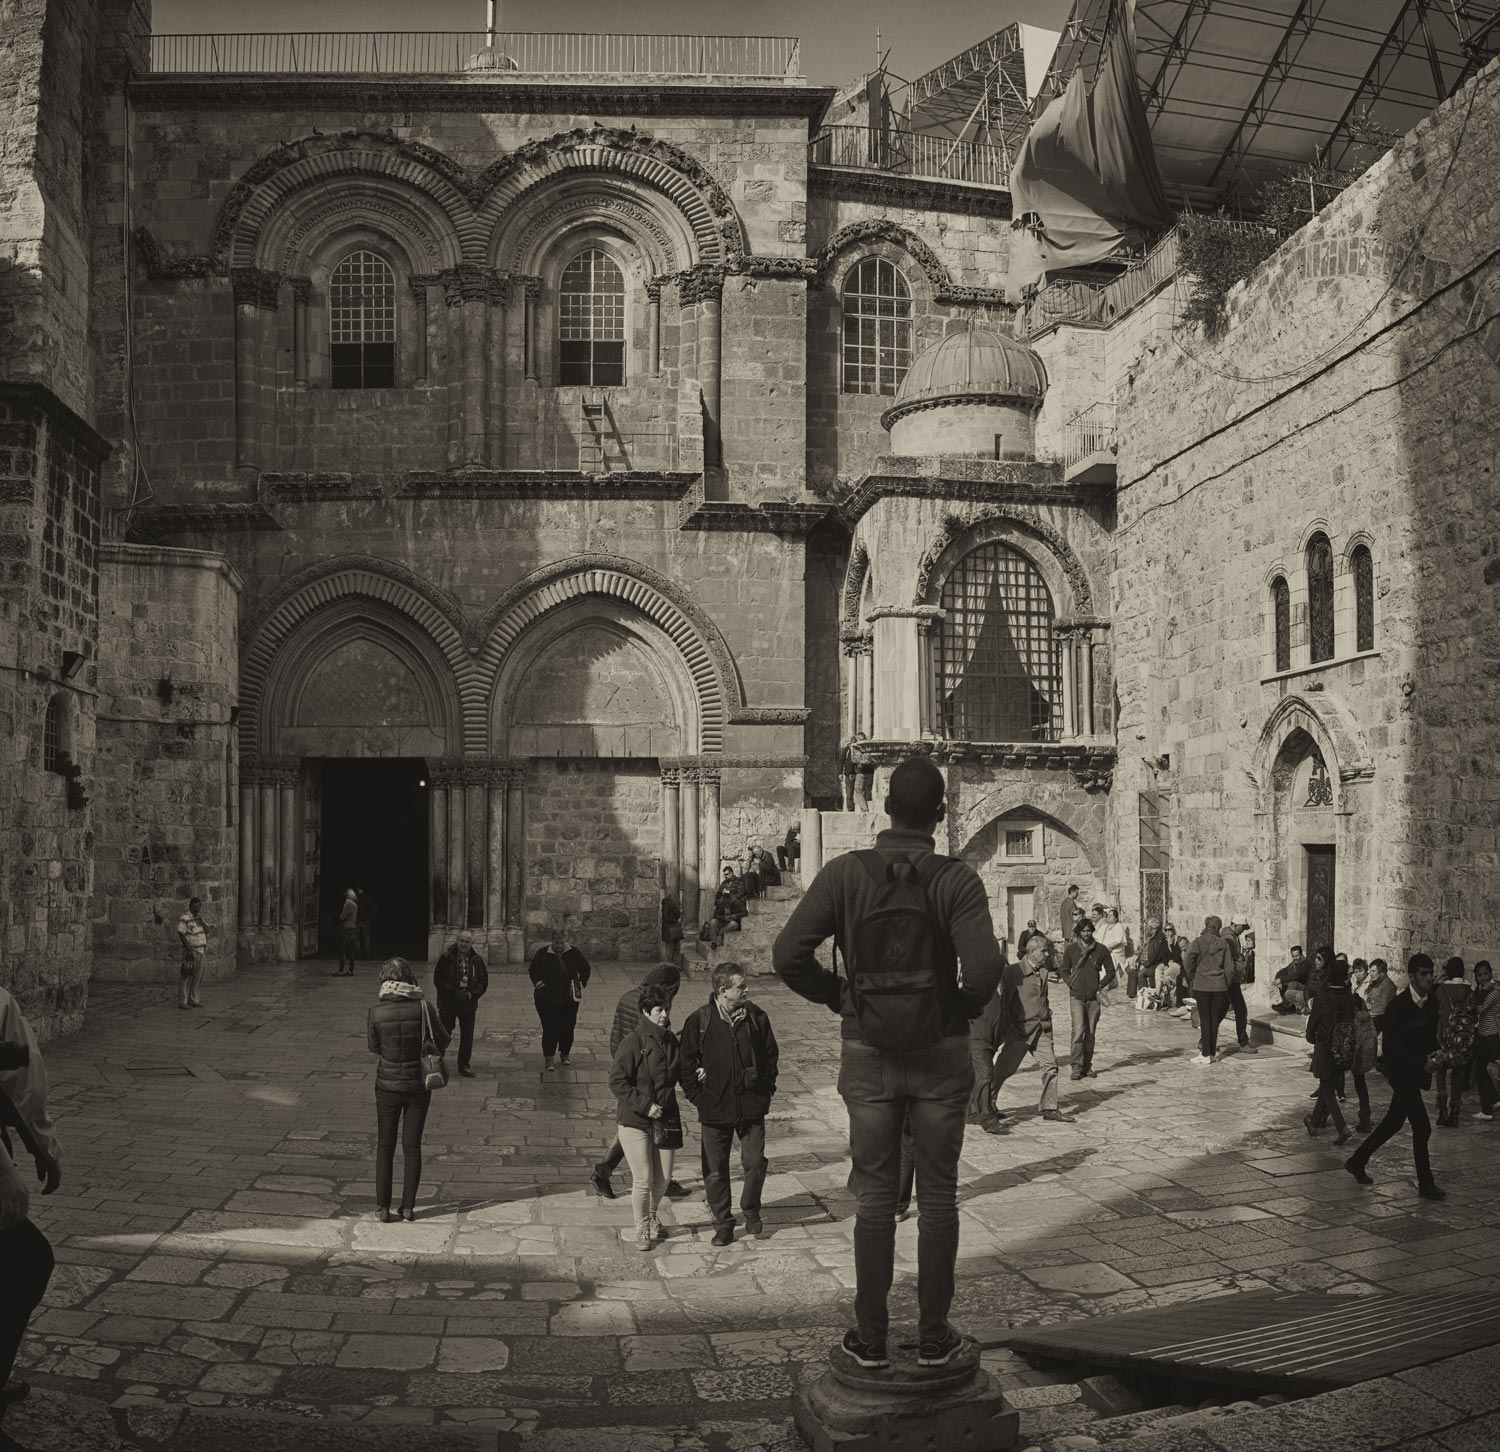 Out front at the Church of the Holy Sepulcher.